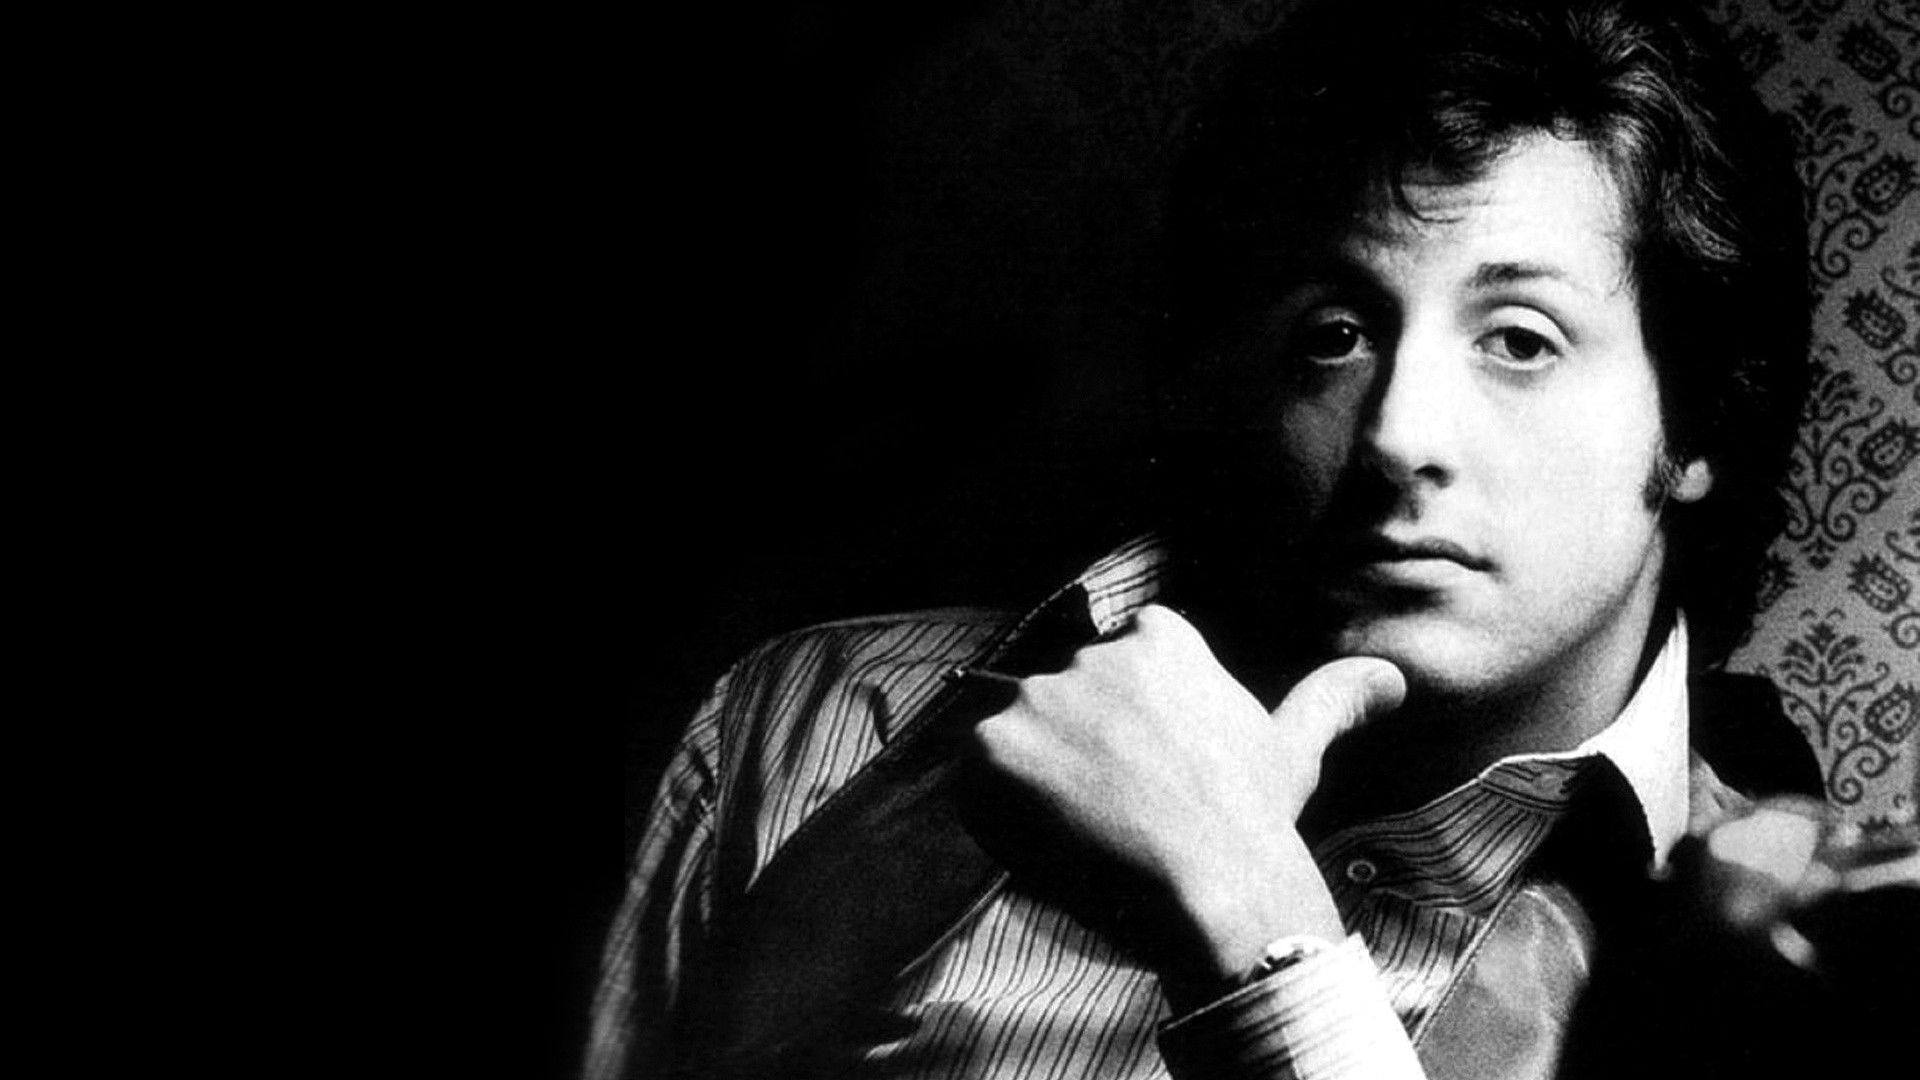 sylvester stallone hd wallpapers 4 | celebrities wallpapers